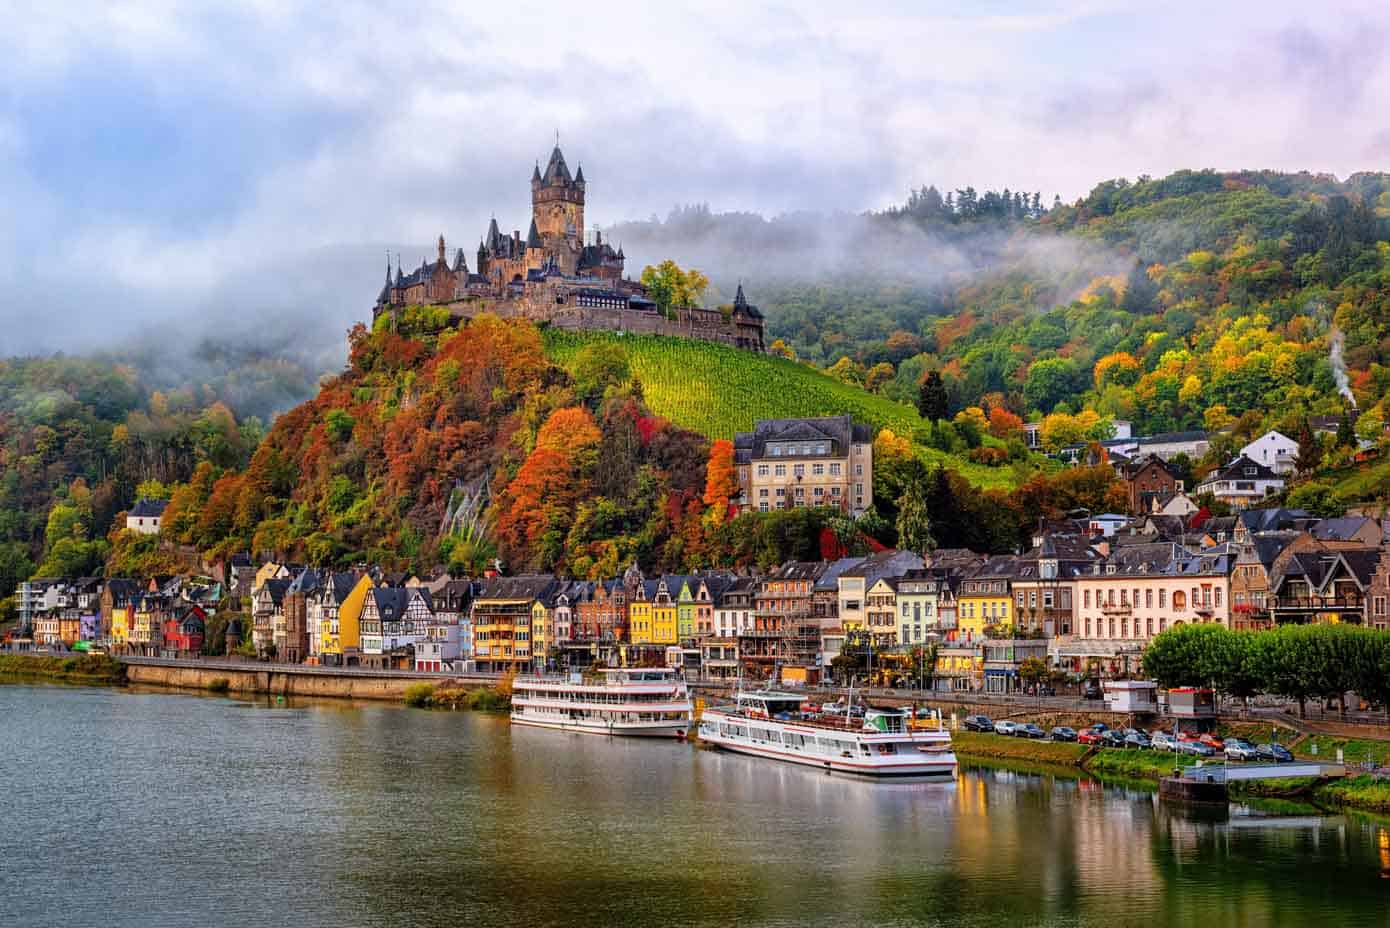 Reichsburg Castle on a hill along a river on a cloud day during autumn.